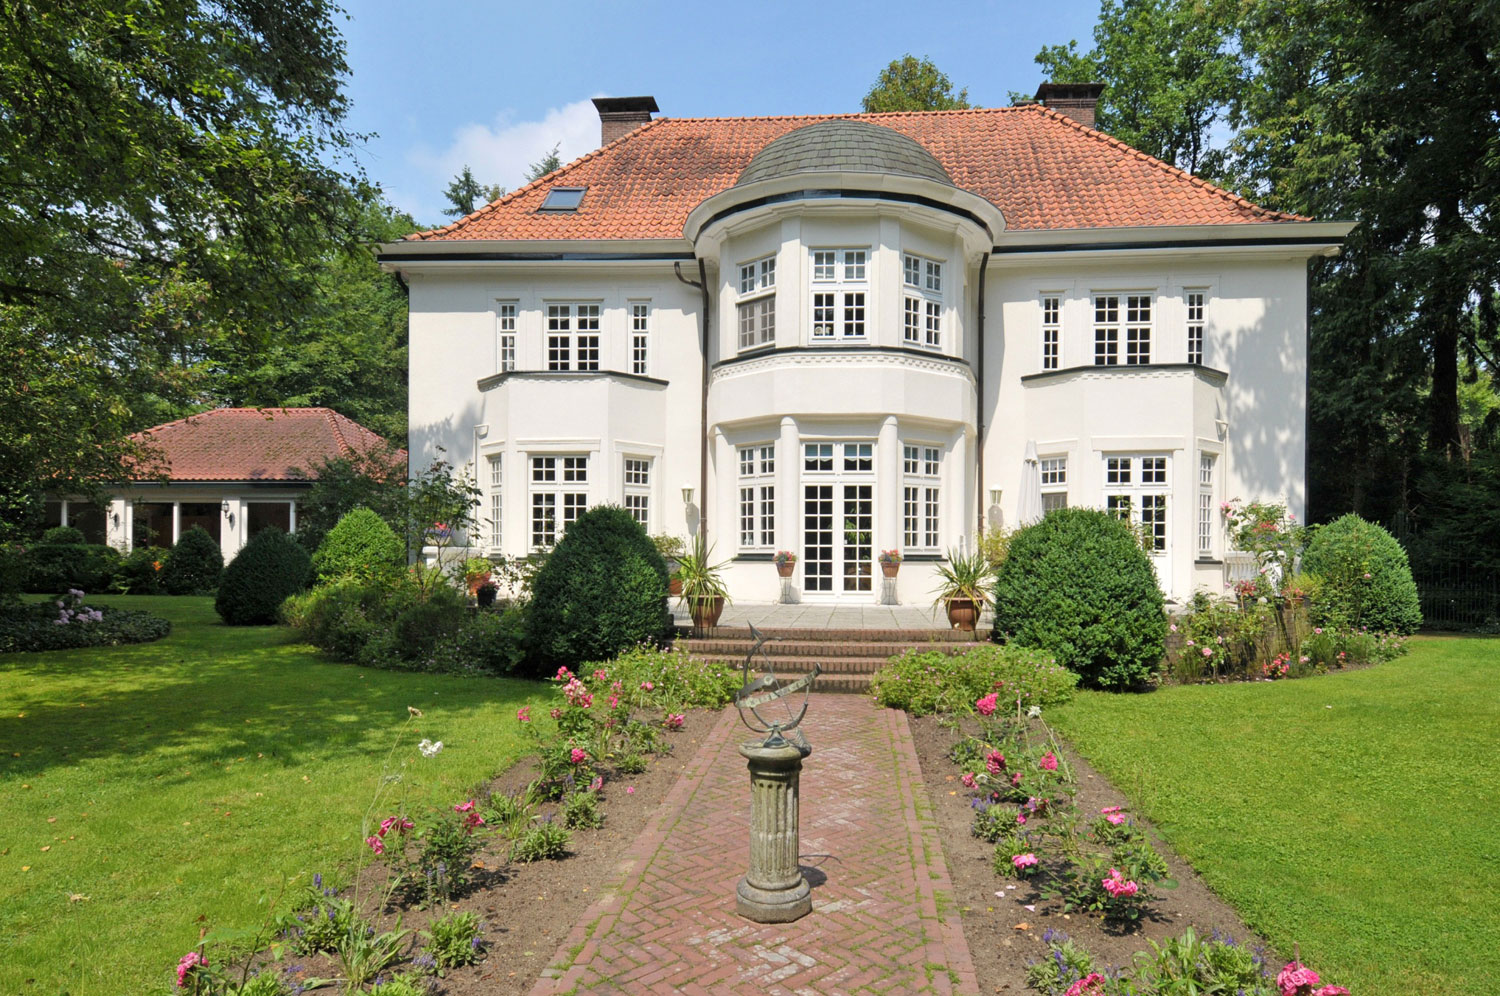 A stately mansion built in 1921, Villa Hoogenoord has been exquisitely restored and updated for 21st-century country living.